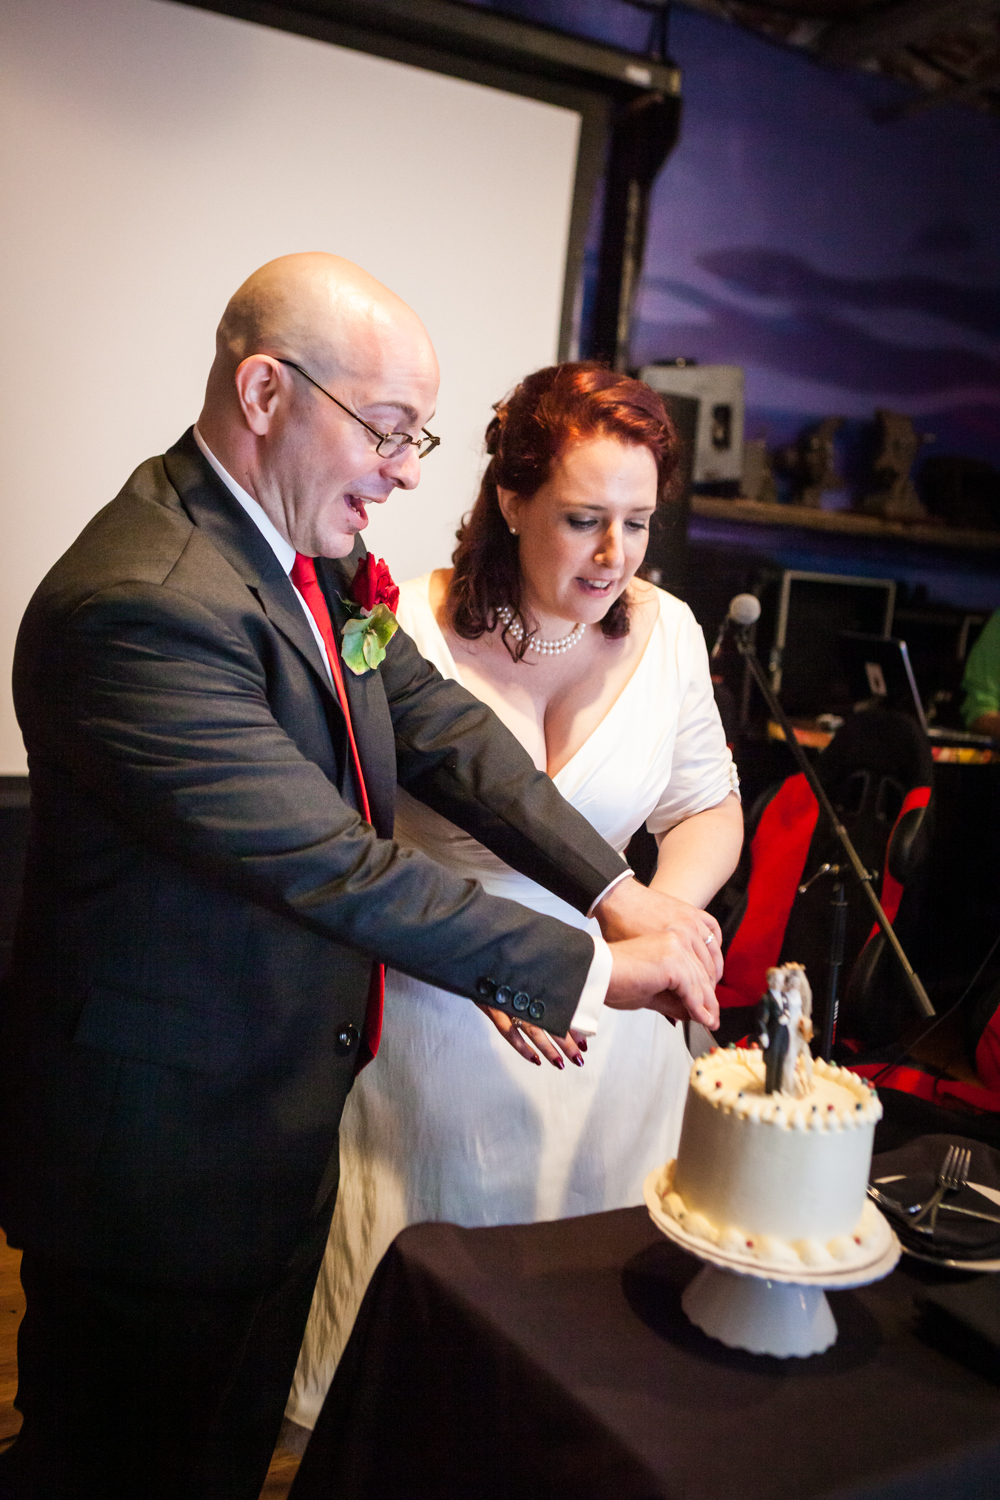 Bride and groom cutting cake at a DUMBO wedding